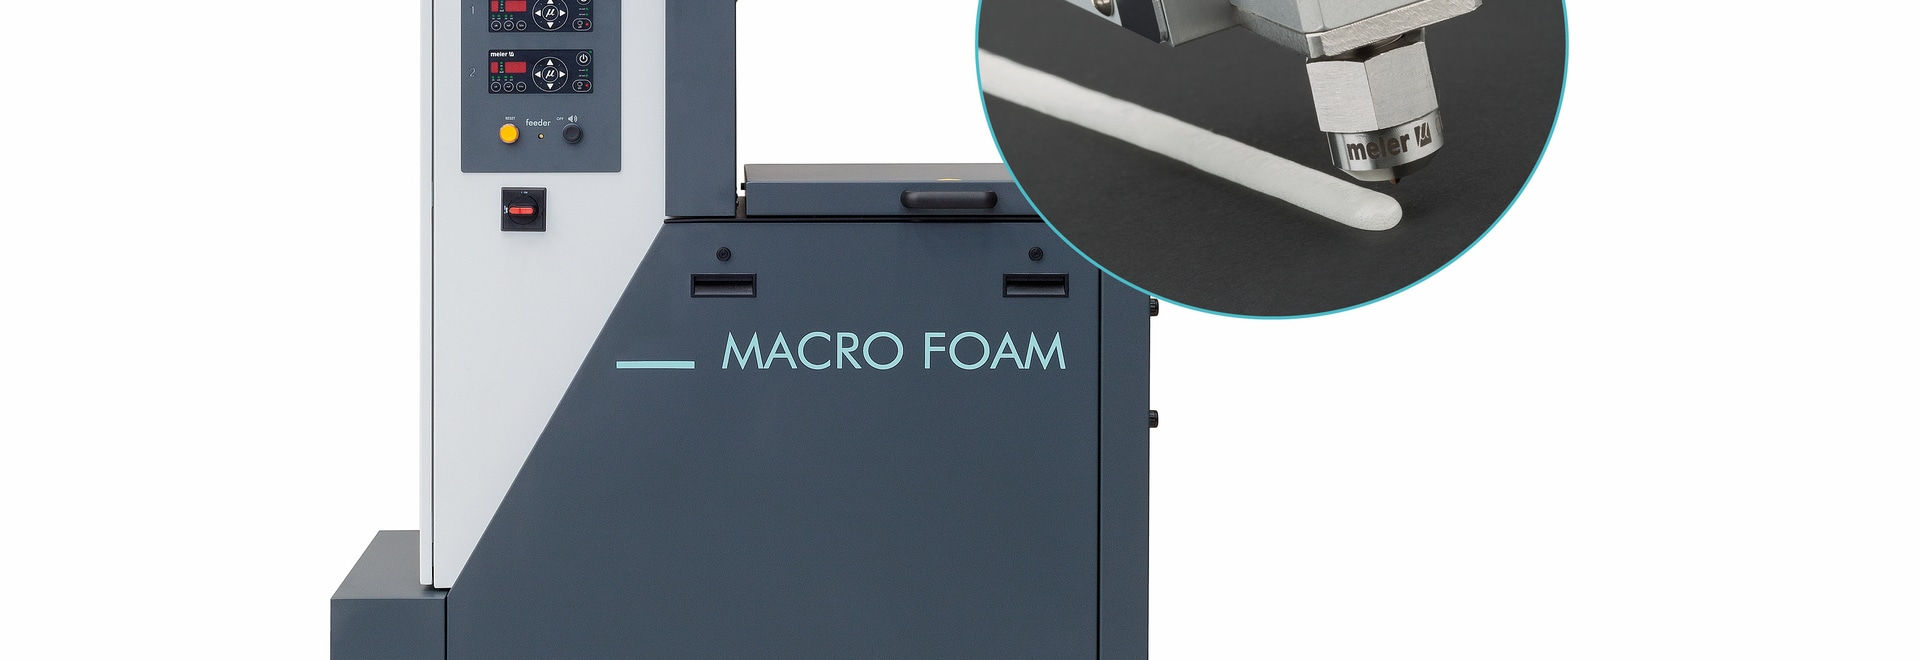 MACRO FOAM: MELTING, FOAMING AND PUMPING OF HOT MELT AND PUR ADHESIVES